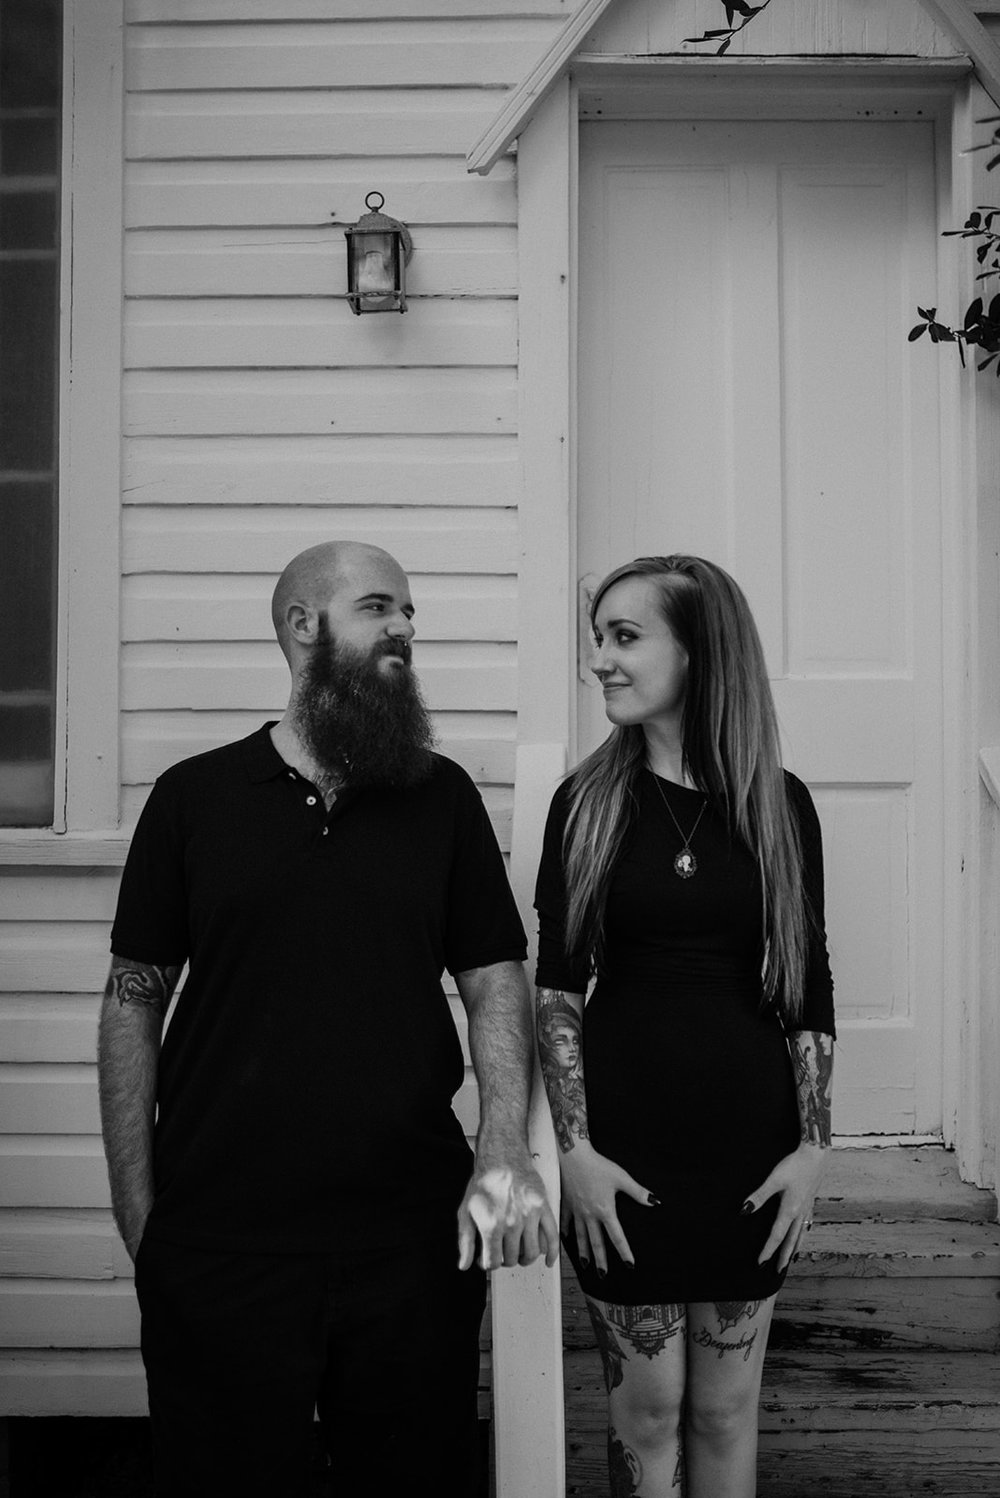 DowntownTitusvilleEngagement_068.jpg